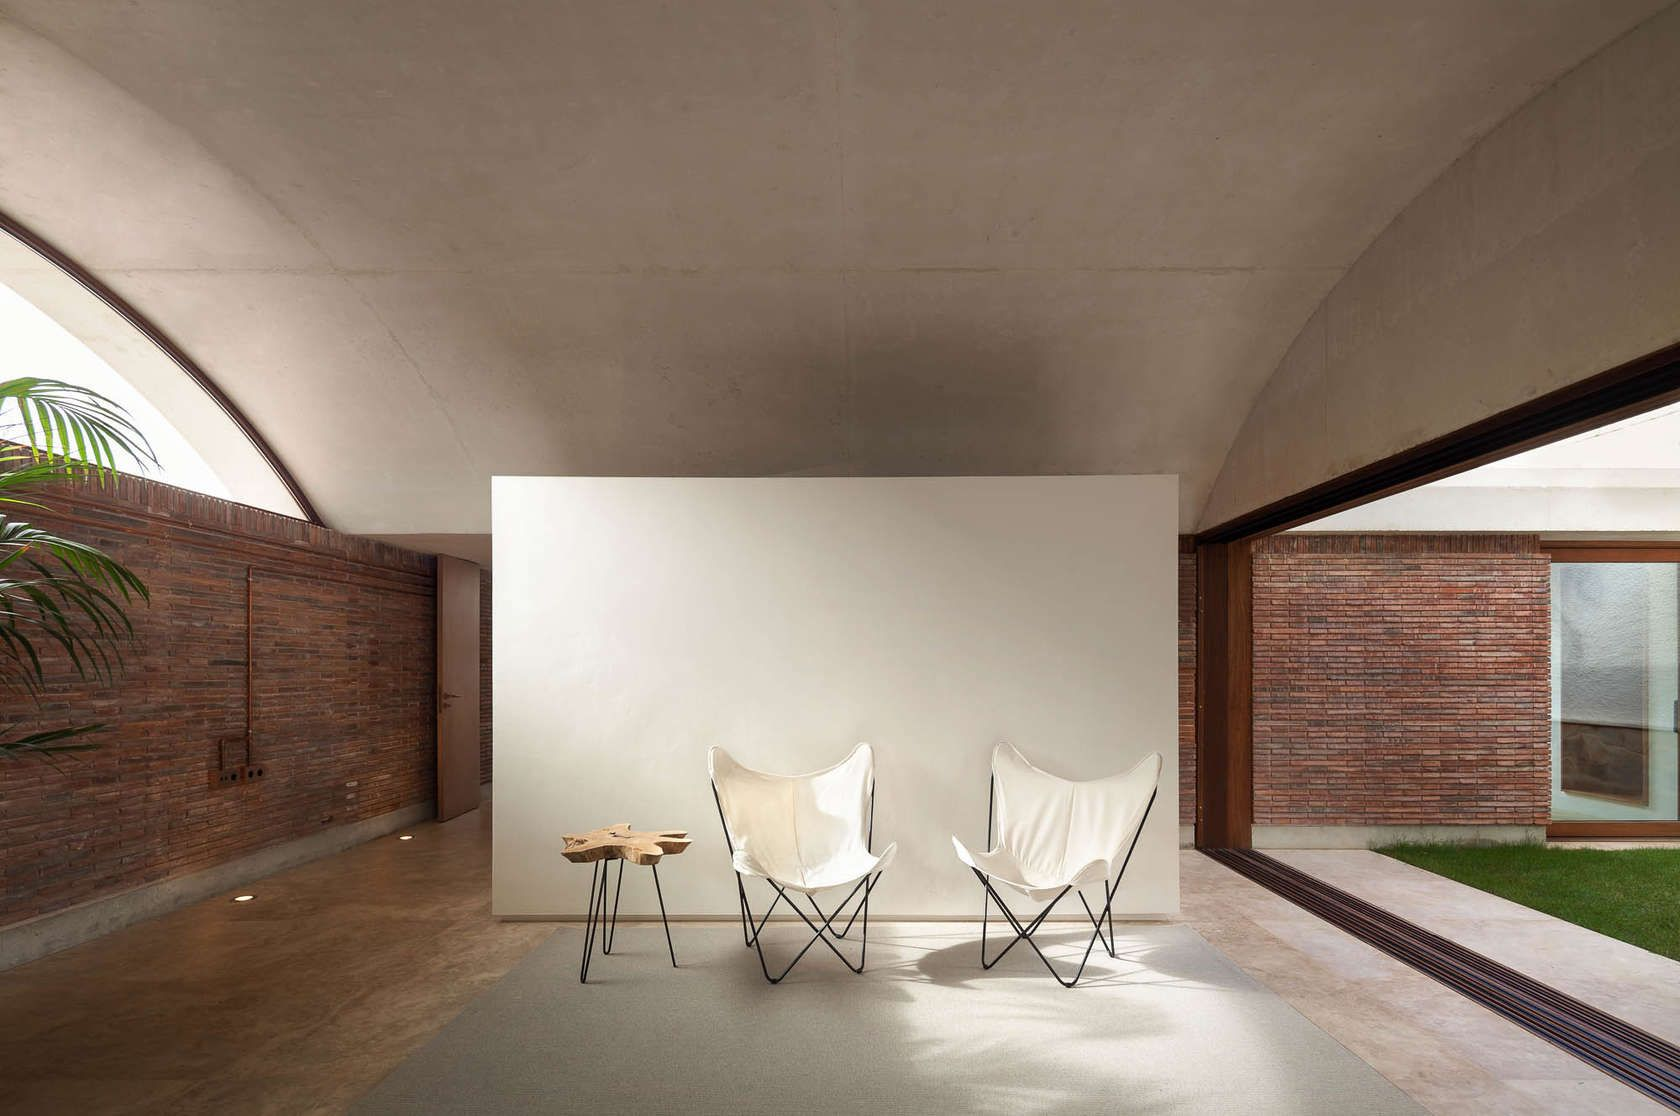 IV House, designed by MESURA is an ambitious work marked